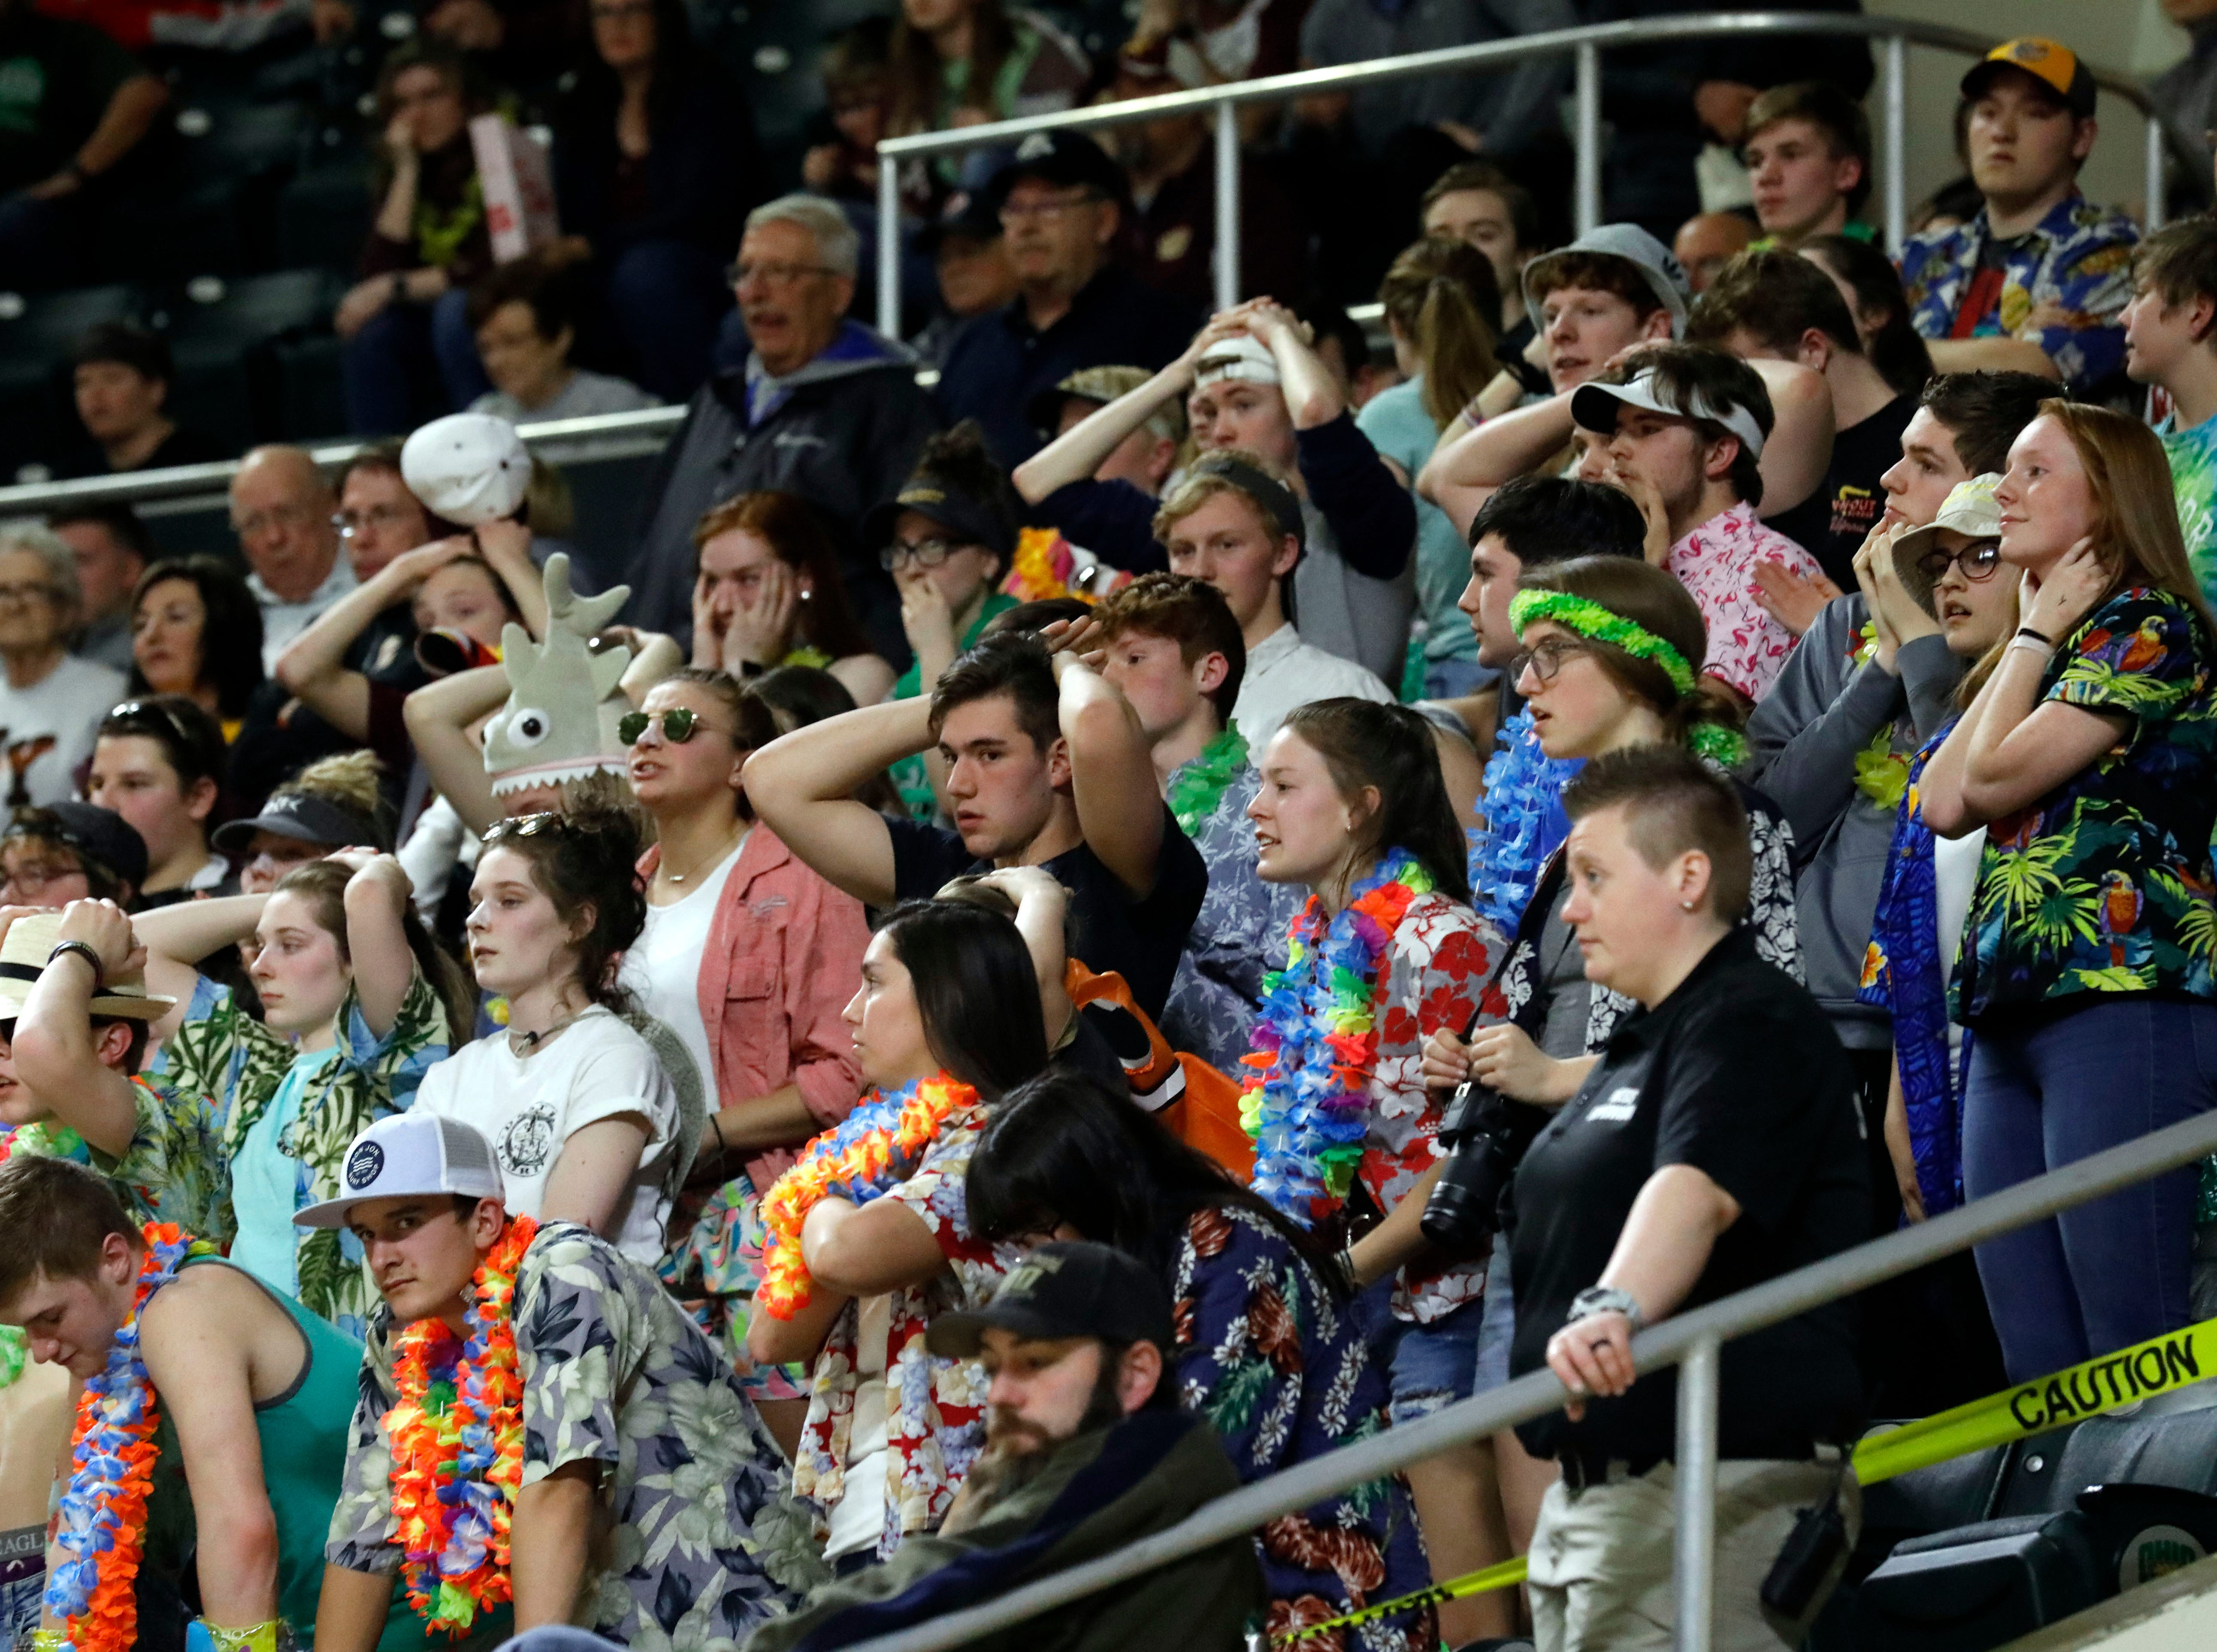 Berne Union students react as Glenwood extends its lead during the second half of a closely fought Division IV Regional Semifinal game Tuesday night, March 12, 2019, at the Ohio University Convocation Center in Athens. The Rockets lost the game 69-64.